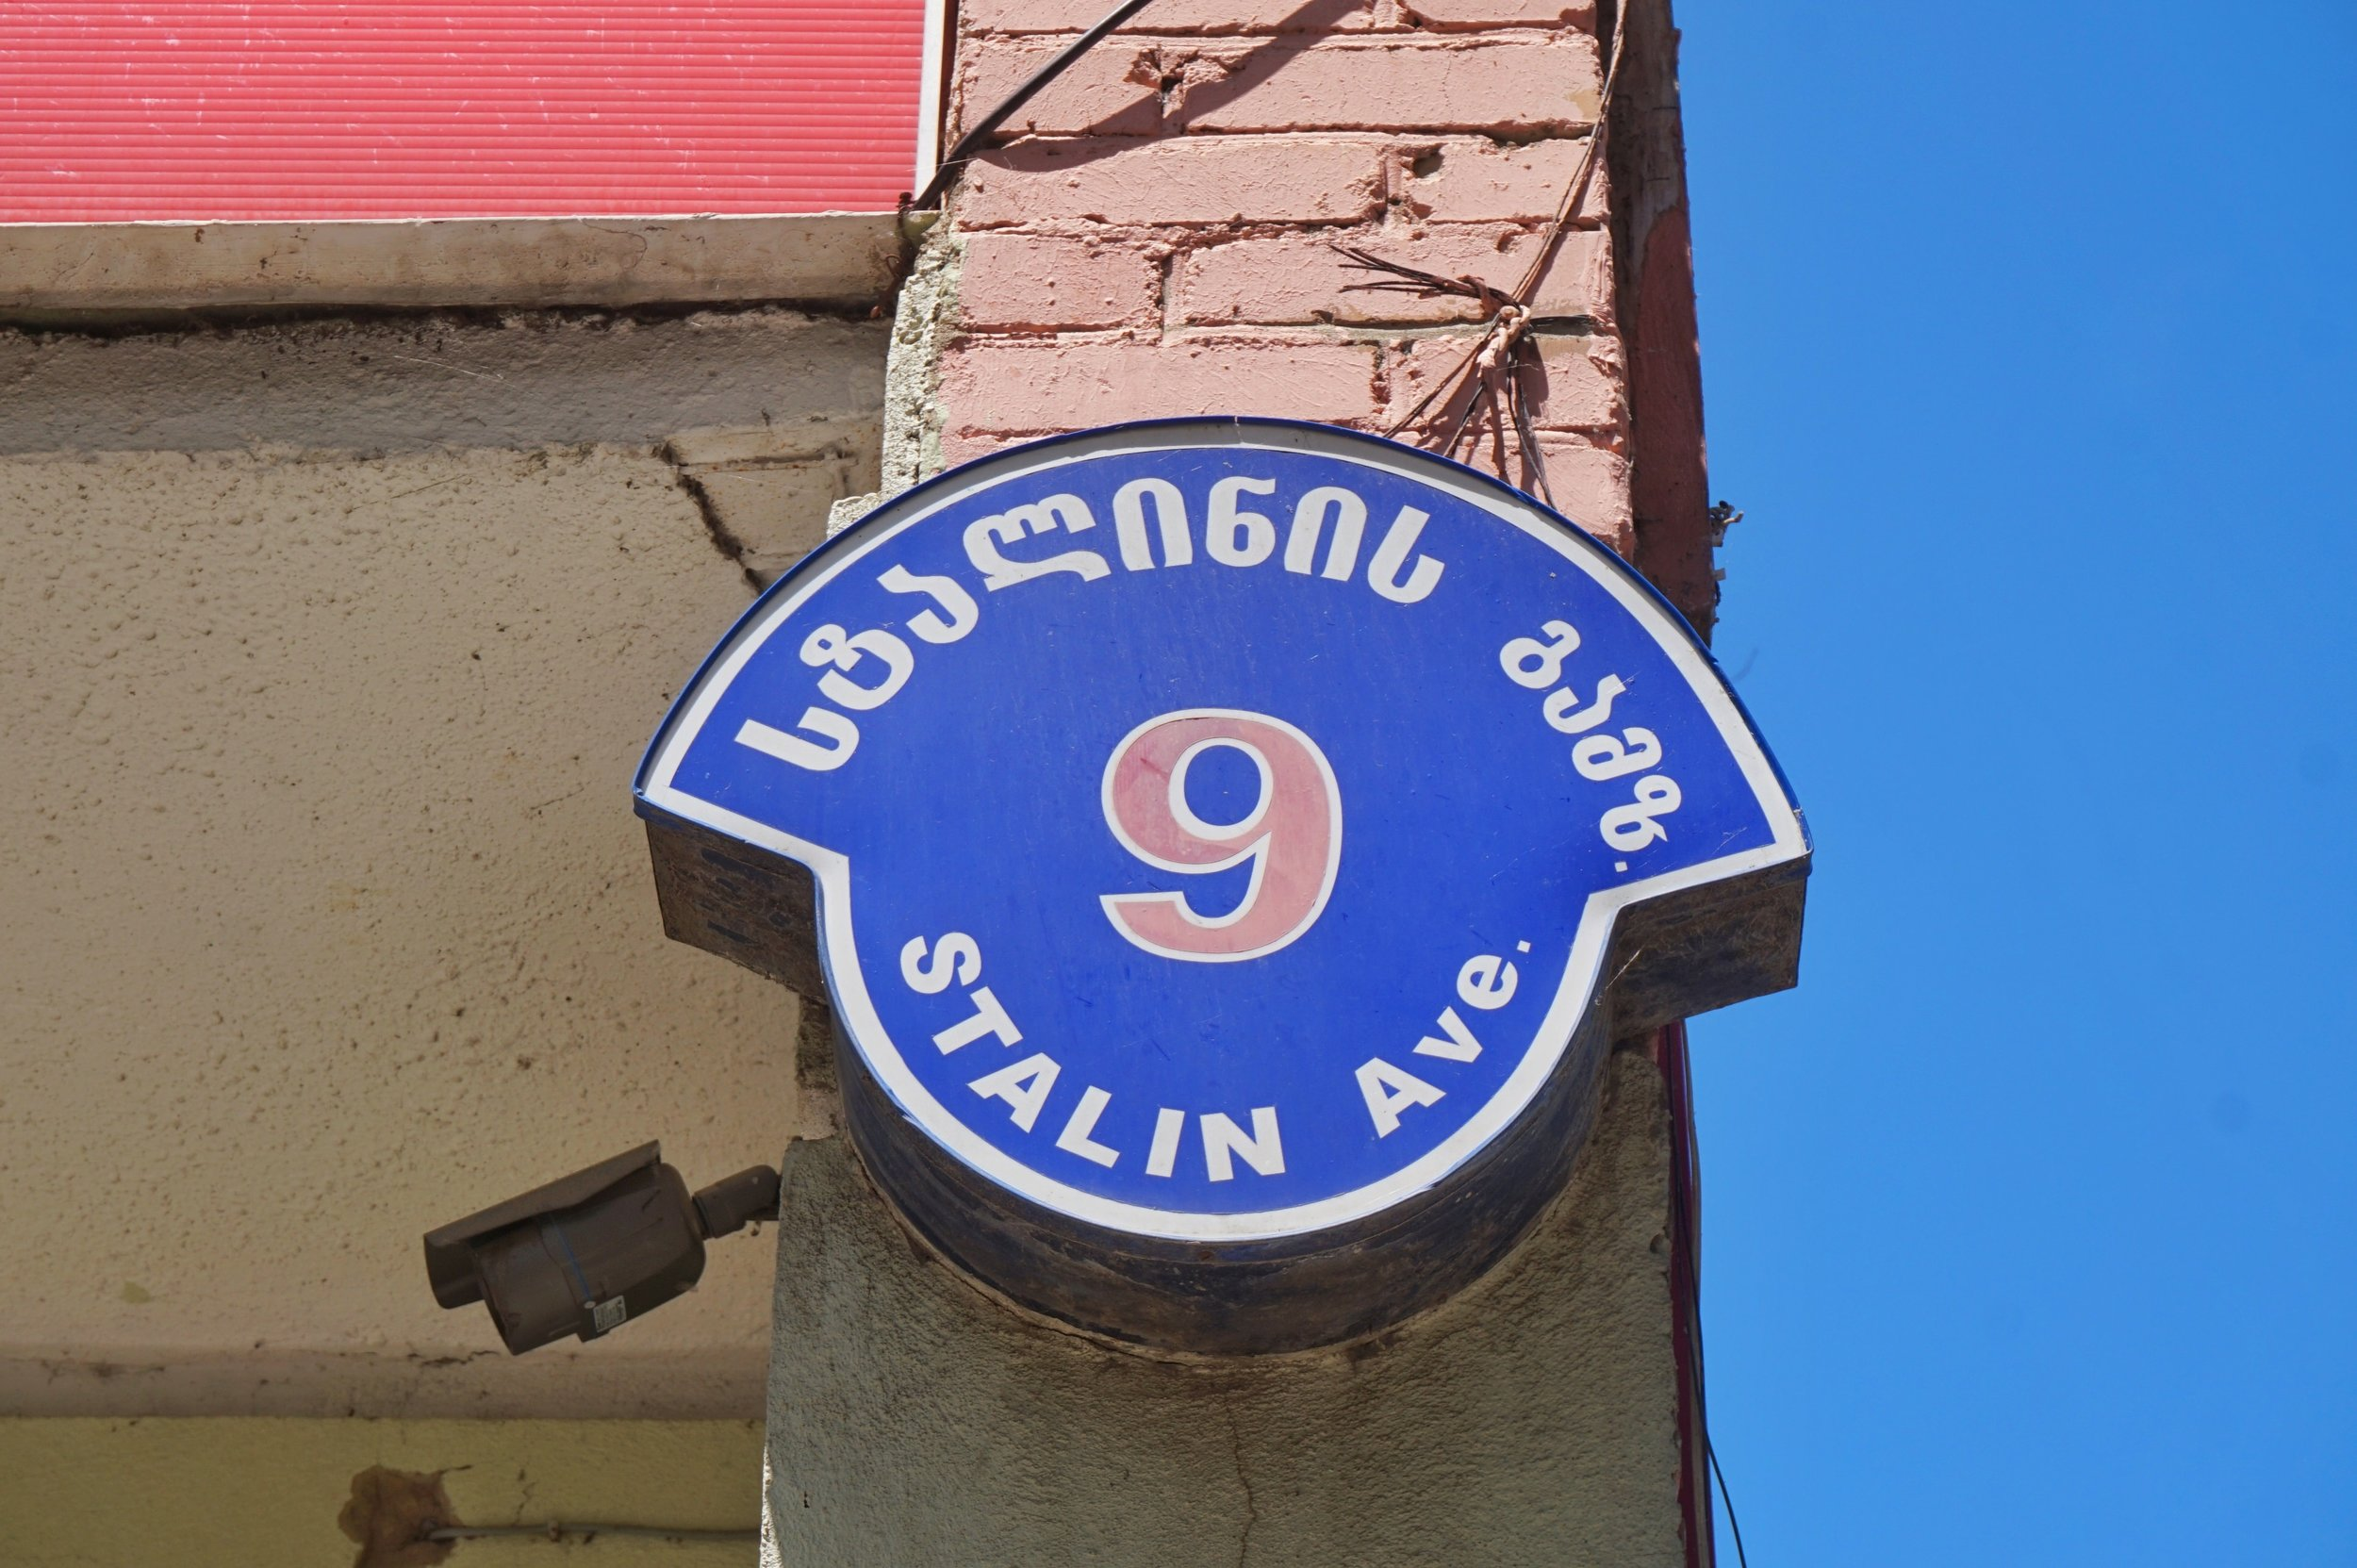 Wandering Stalin Ave. is a must do on your Gori day trip from Tbilisi